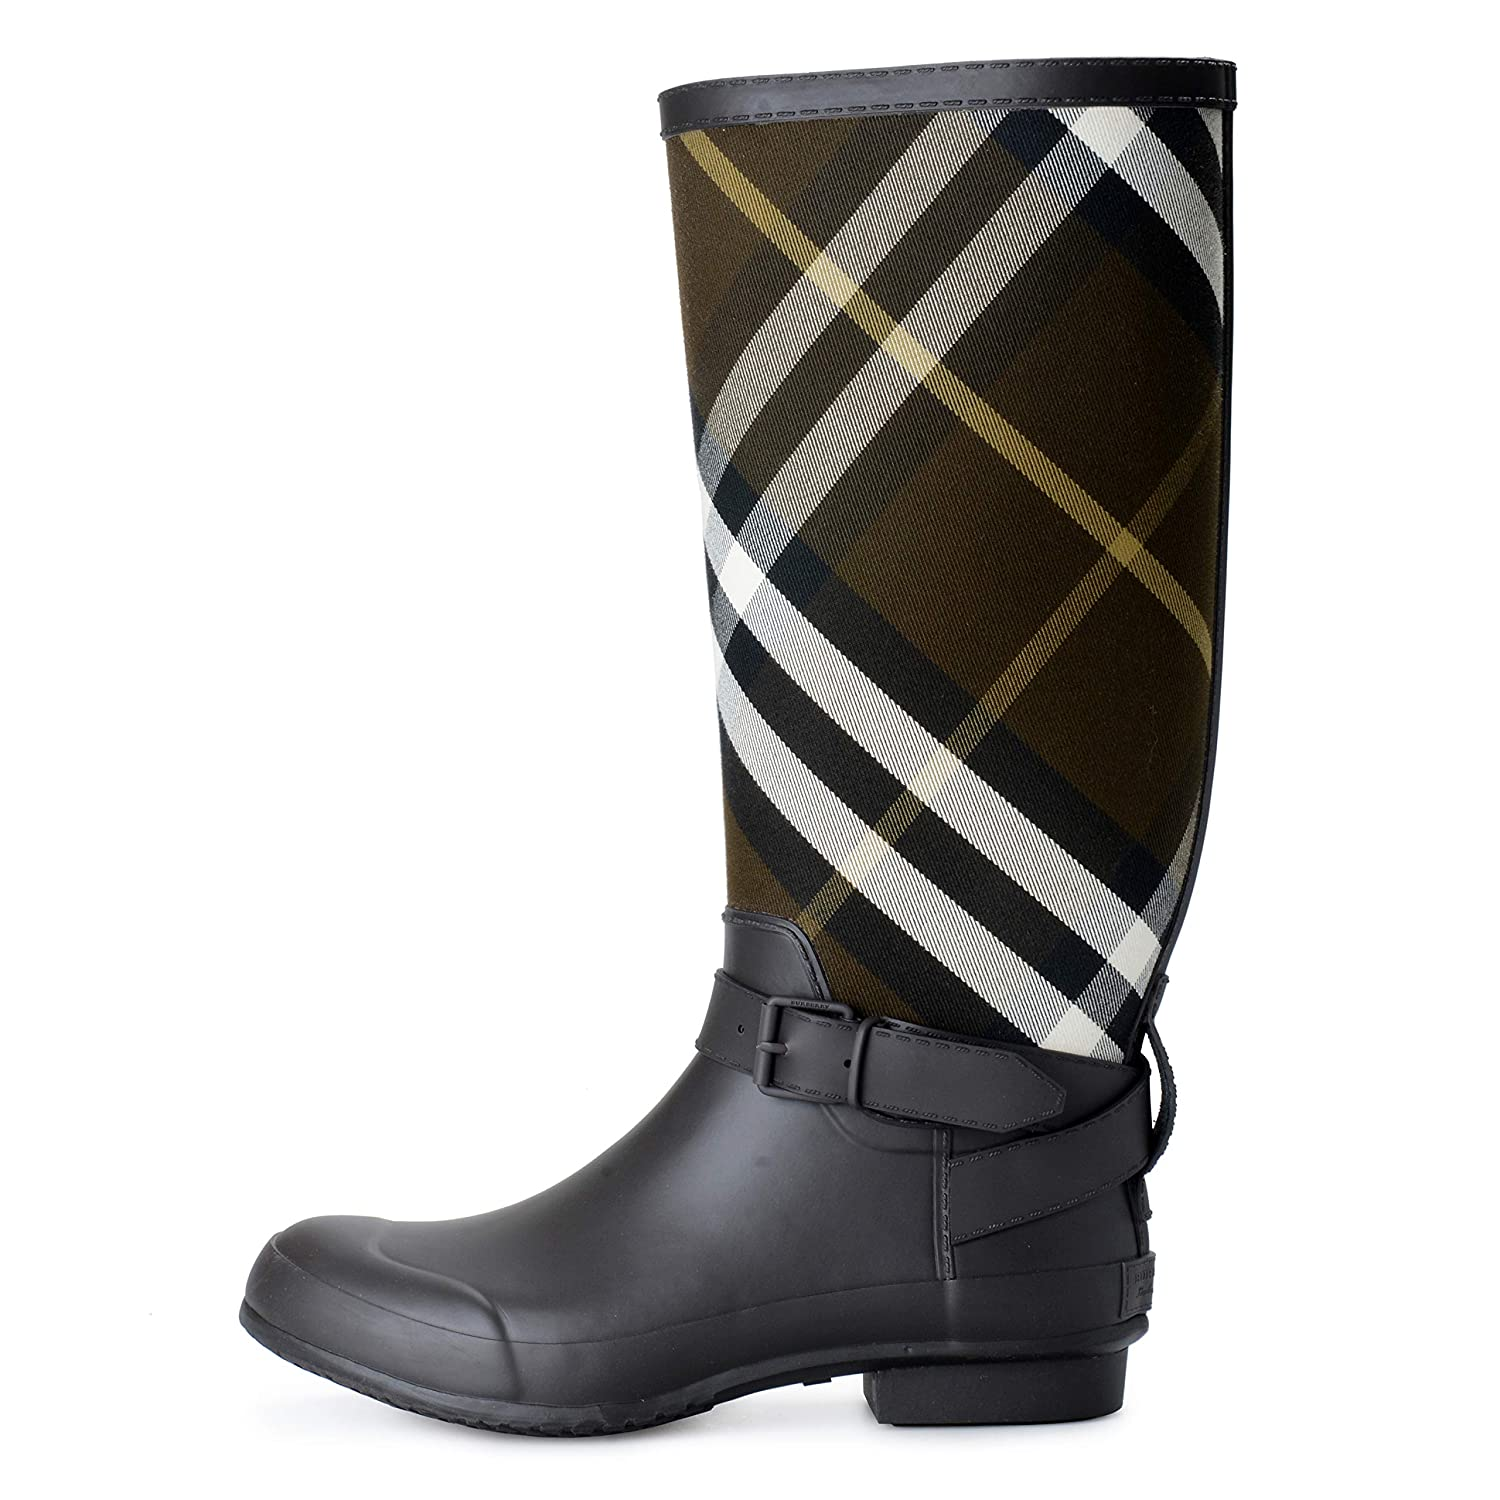 7e68c063ea8e2 Amazon.com | BURBERRY Women's Check Print Rain Boots Shoes US 11 IT 42 |  Rain Footwear